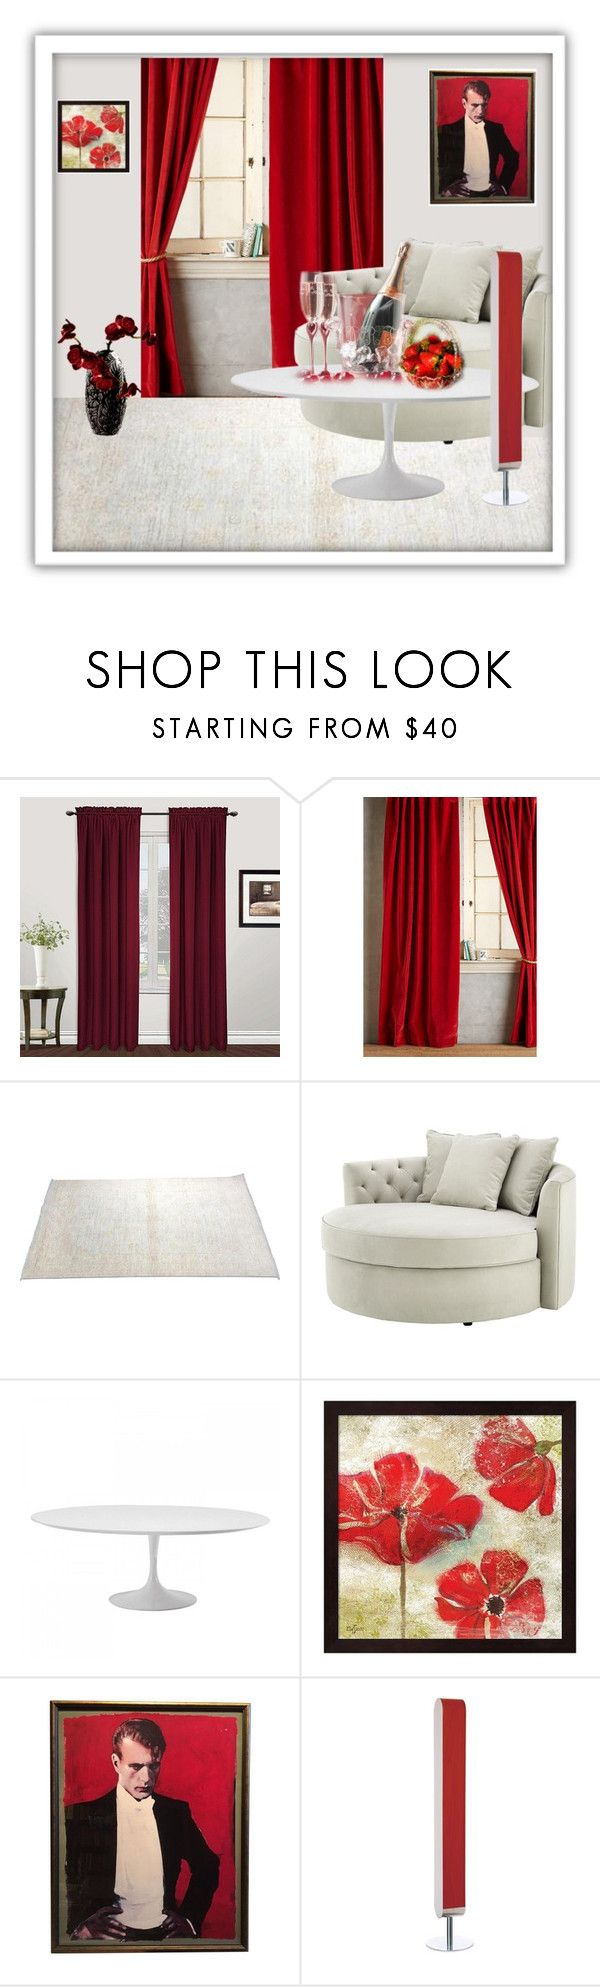 """""""Breakfast of the aristocrat"""" by m-kints ❤ liked on Polyvore featuring interior, interiors, interior design, home, home decor, interior decorating, United Curtain, Anthropologie, Eichholtz and LZF"""